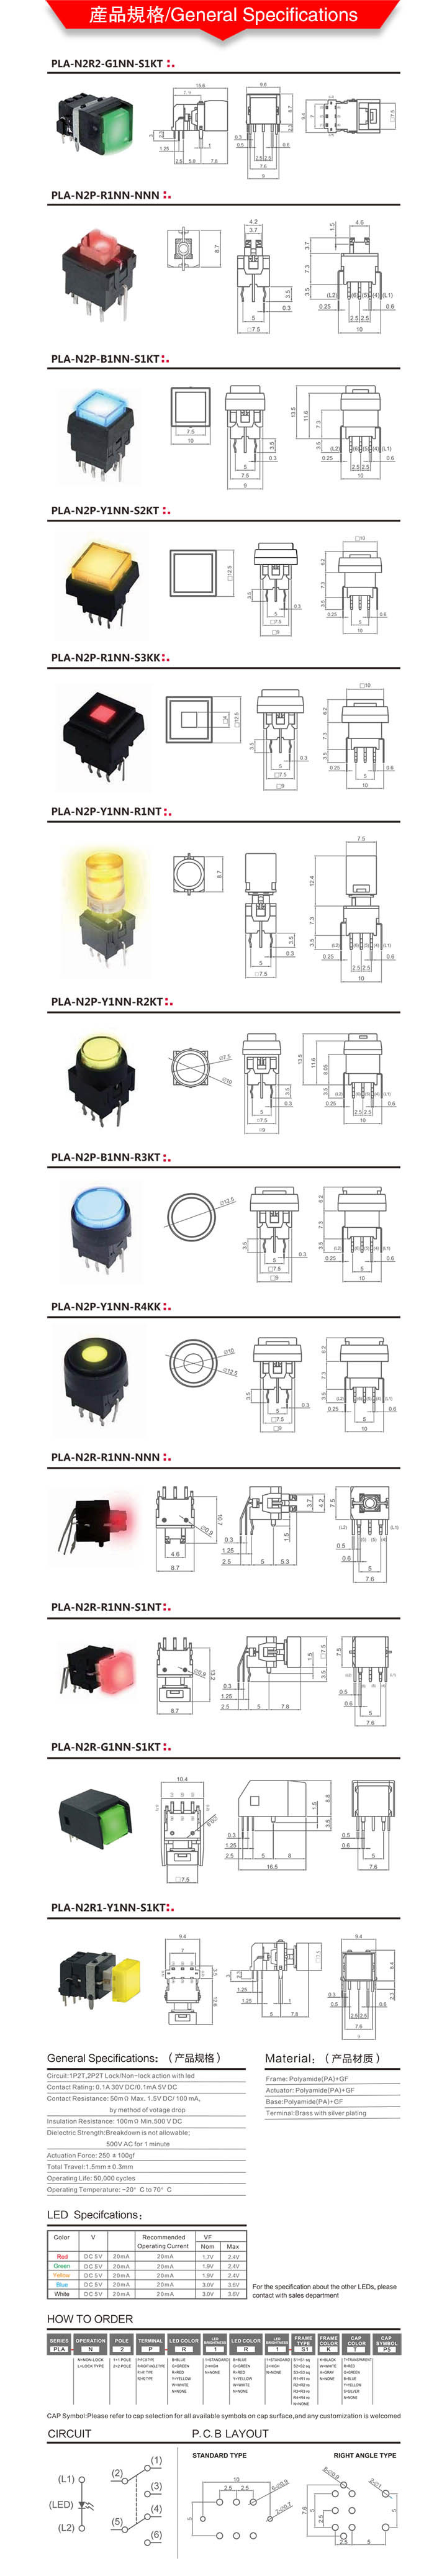 Illuminated Push Button Micro Electrical Wall Switch China Schematic Symbol Lock None Type High Bright Led Illumination Long Life Many Cap Dimension And Laser Etching Options We Can Insert Film Between